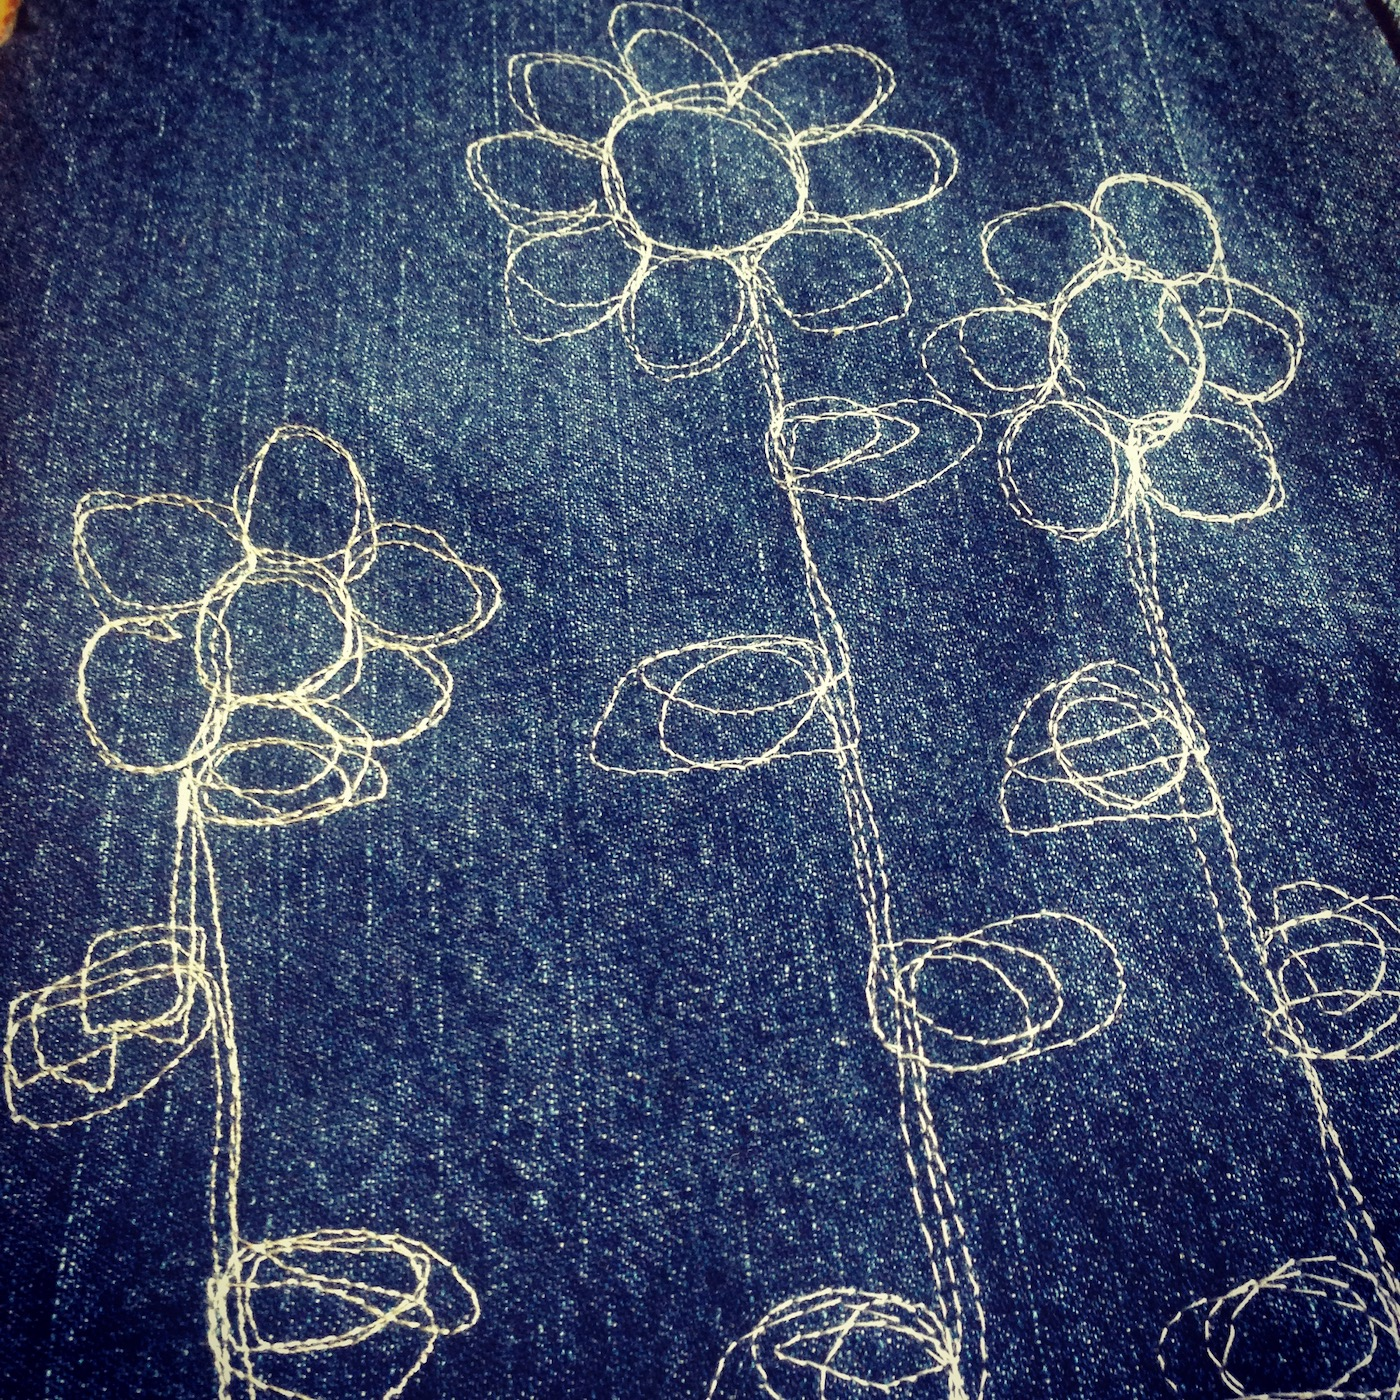 Doodling with a sewing machine.